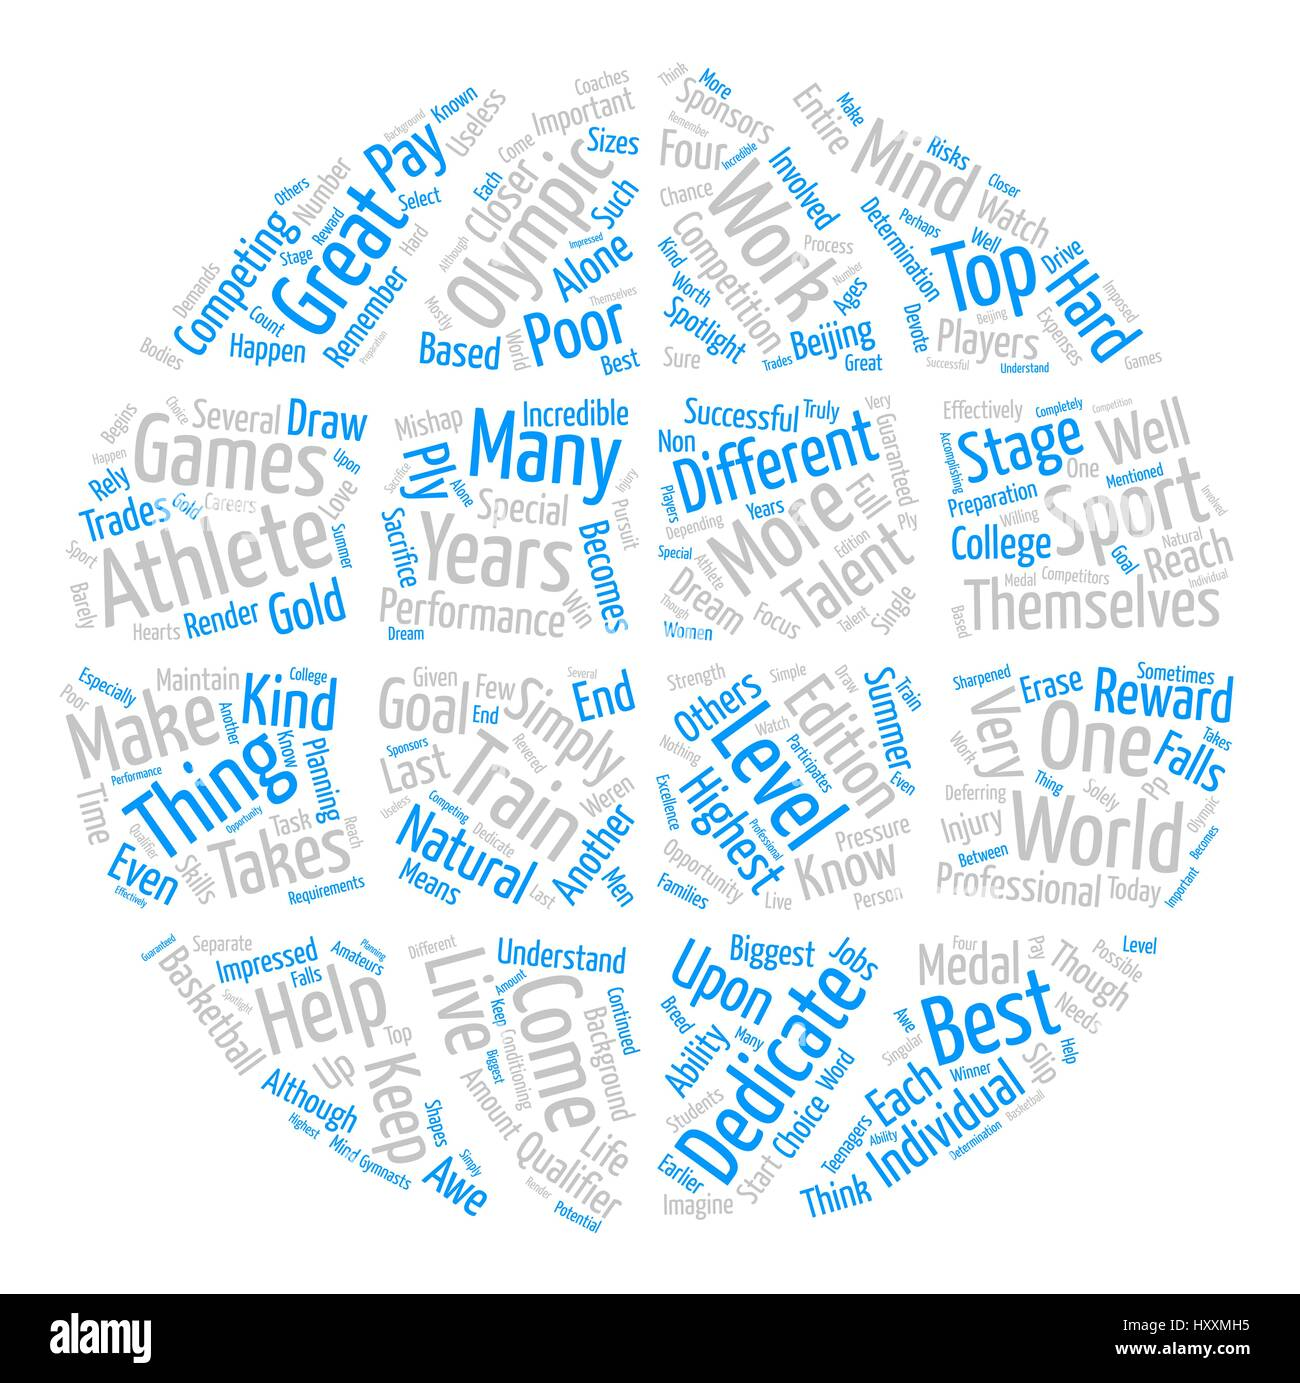 What Makes an Olympic Athlete text background word cloud concept - Stock Vector